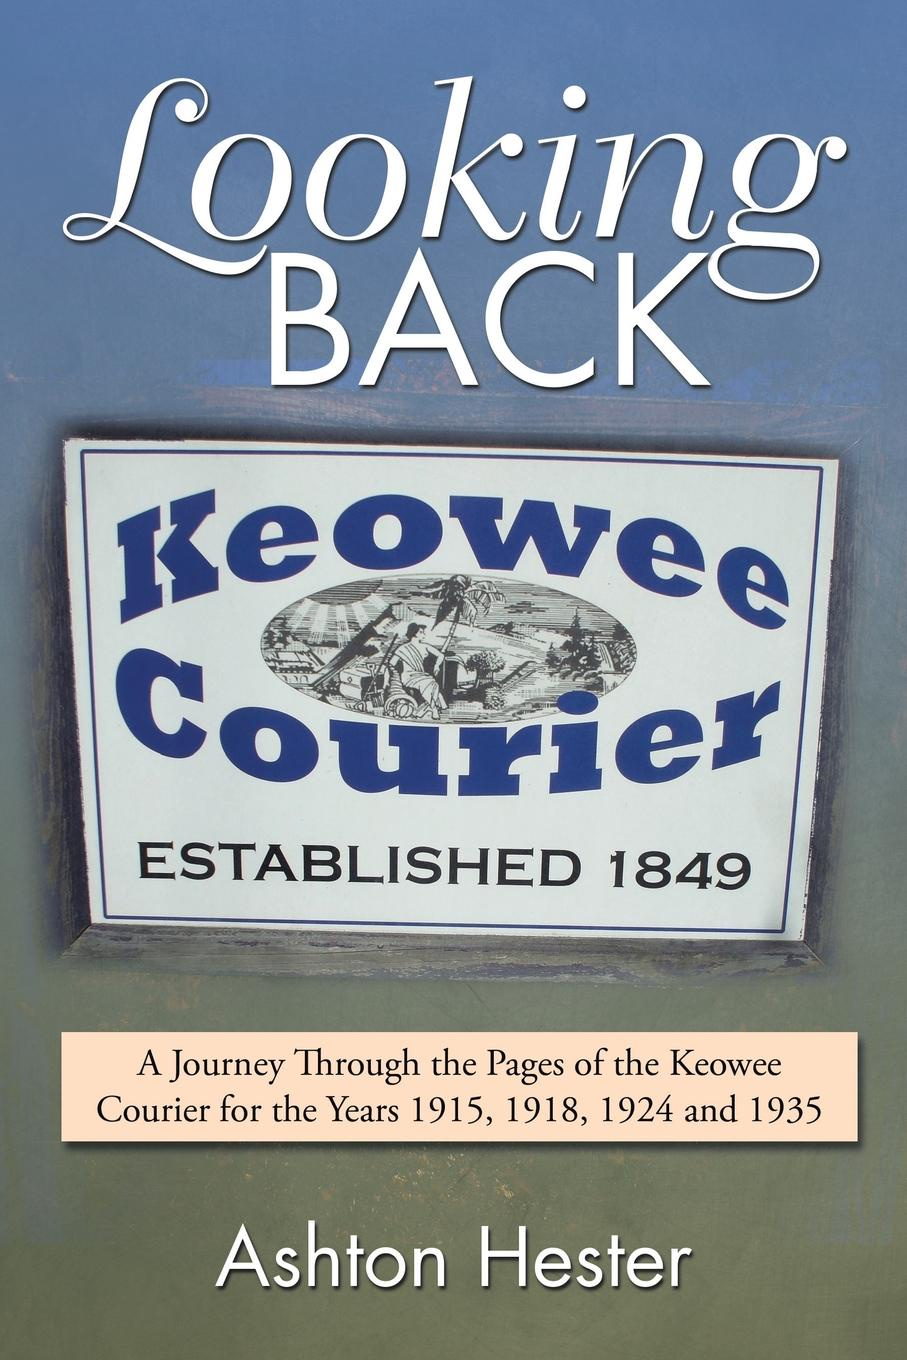 цена Ashton Hester Looking Back. A Journey Through the Pages of the Keowee Courier for the Years 1915, 1918, 1924 and 1935 онлайн в 2017 году